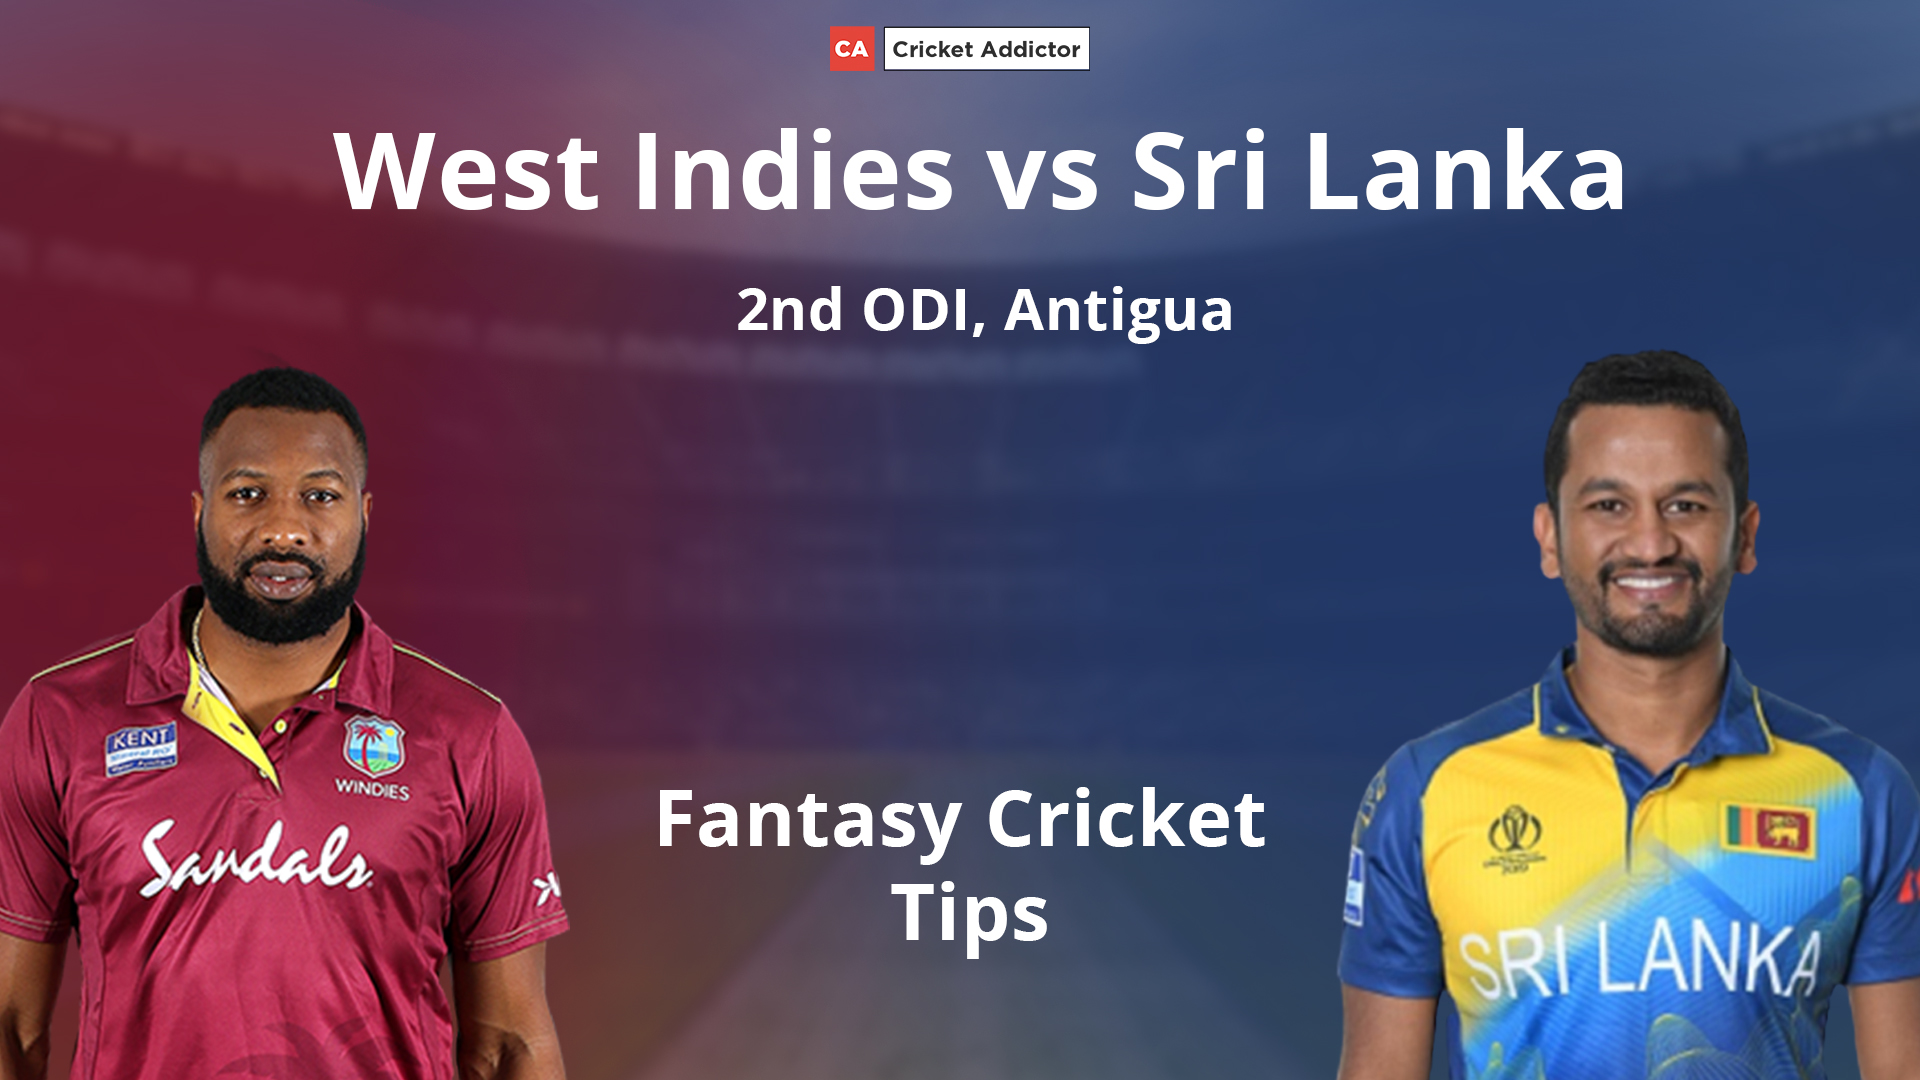 West Indies vs Sri Lanka Dream11 Prediction, Fantasy Cricket Tips, Playing XI, Pitch Report, Dream11 Team, Injury Update.